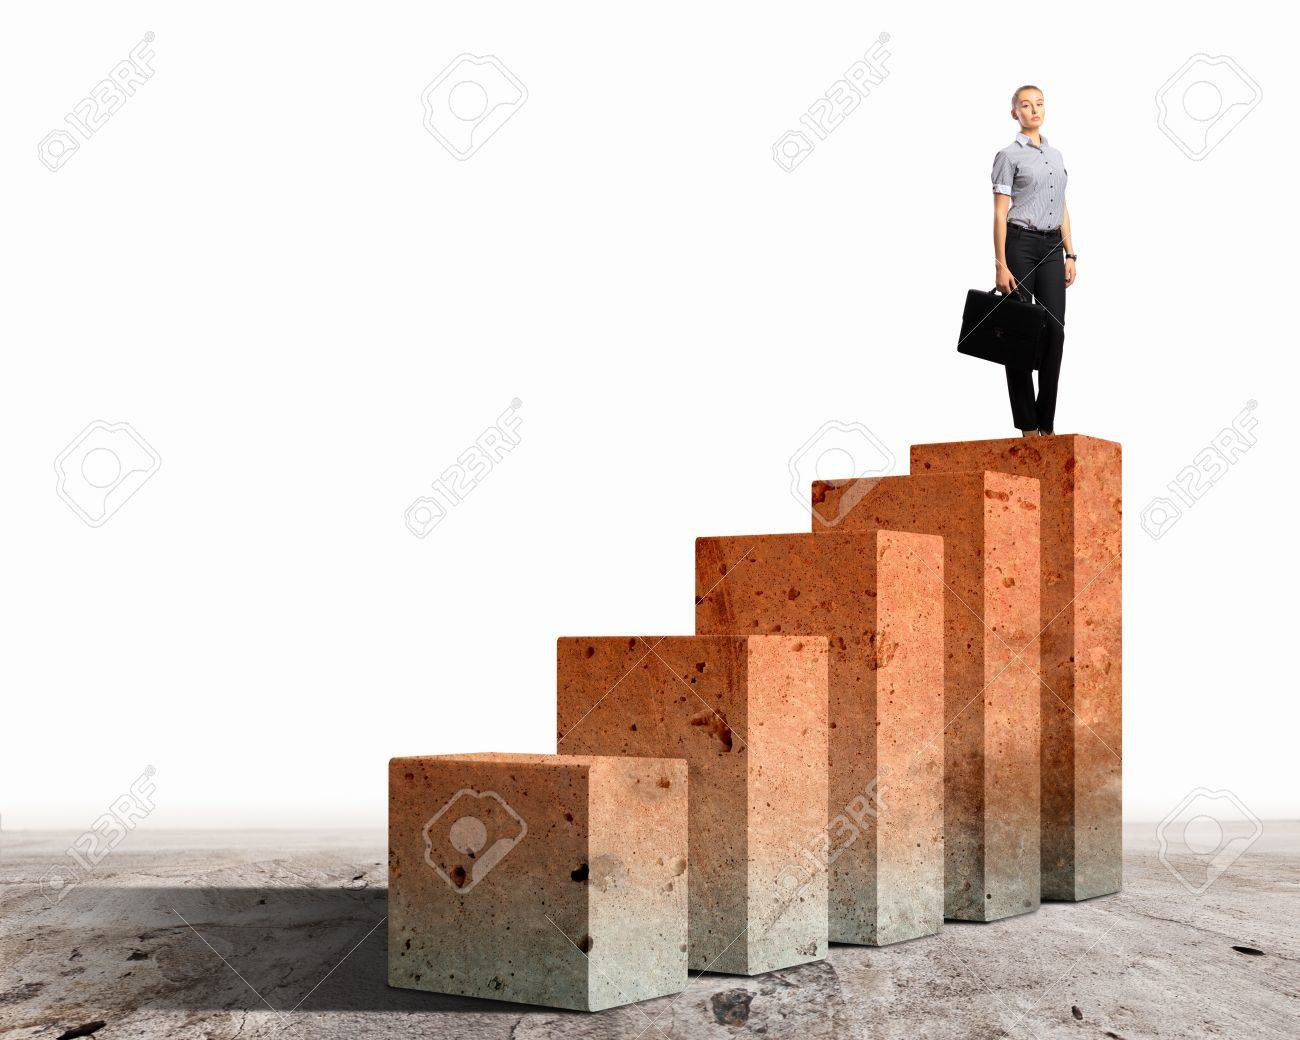 Business person on a graph, representing success and growth Stock Photo - 17769706